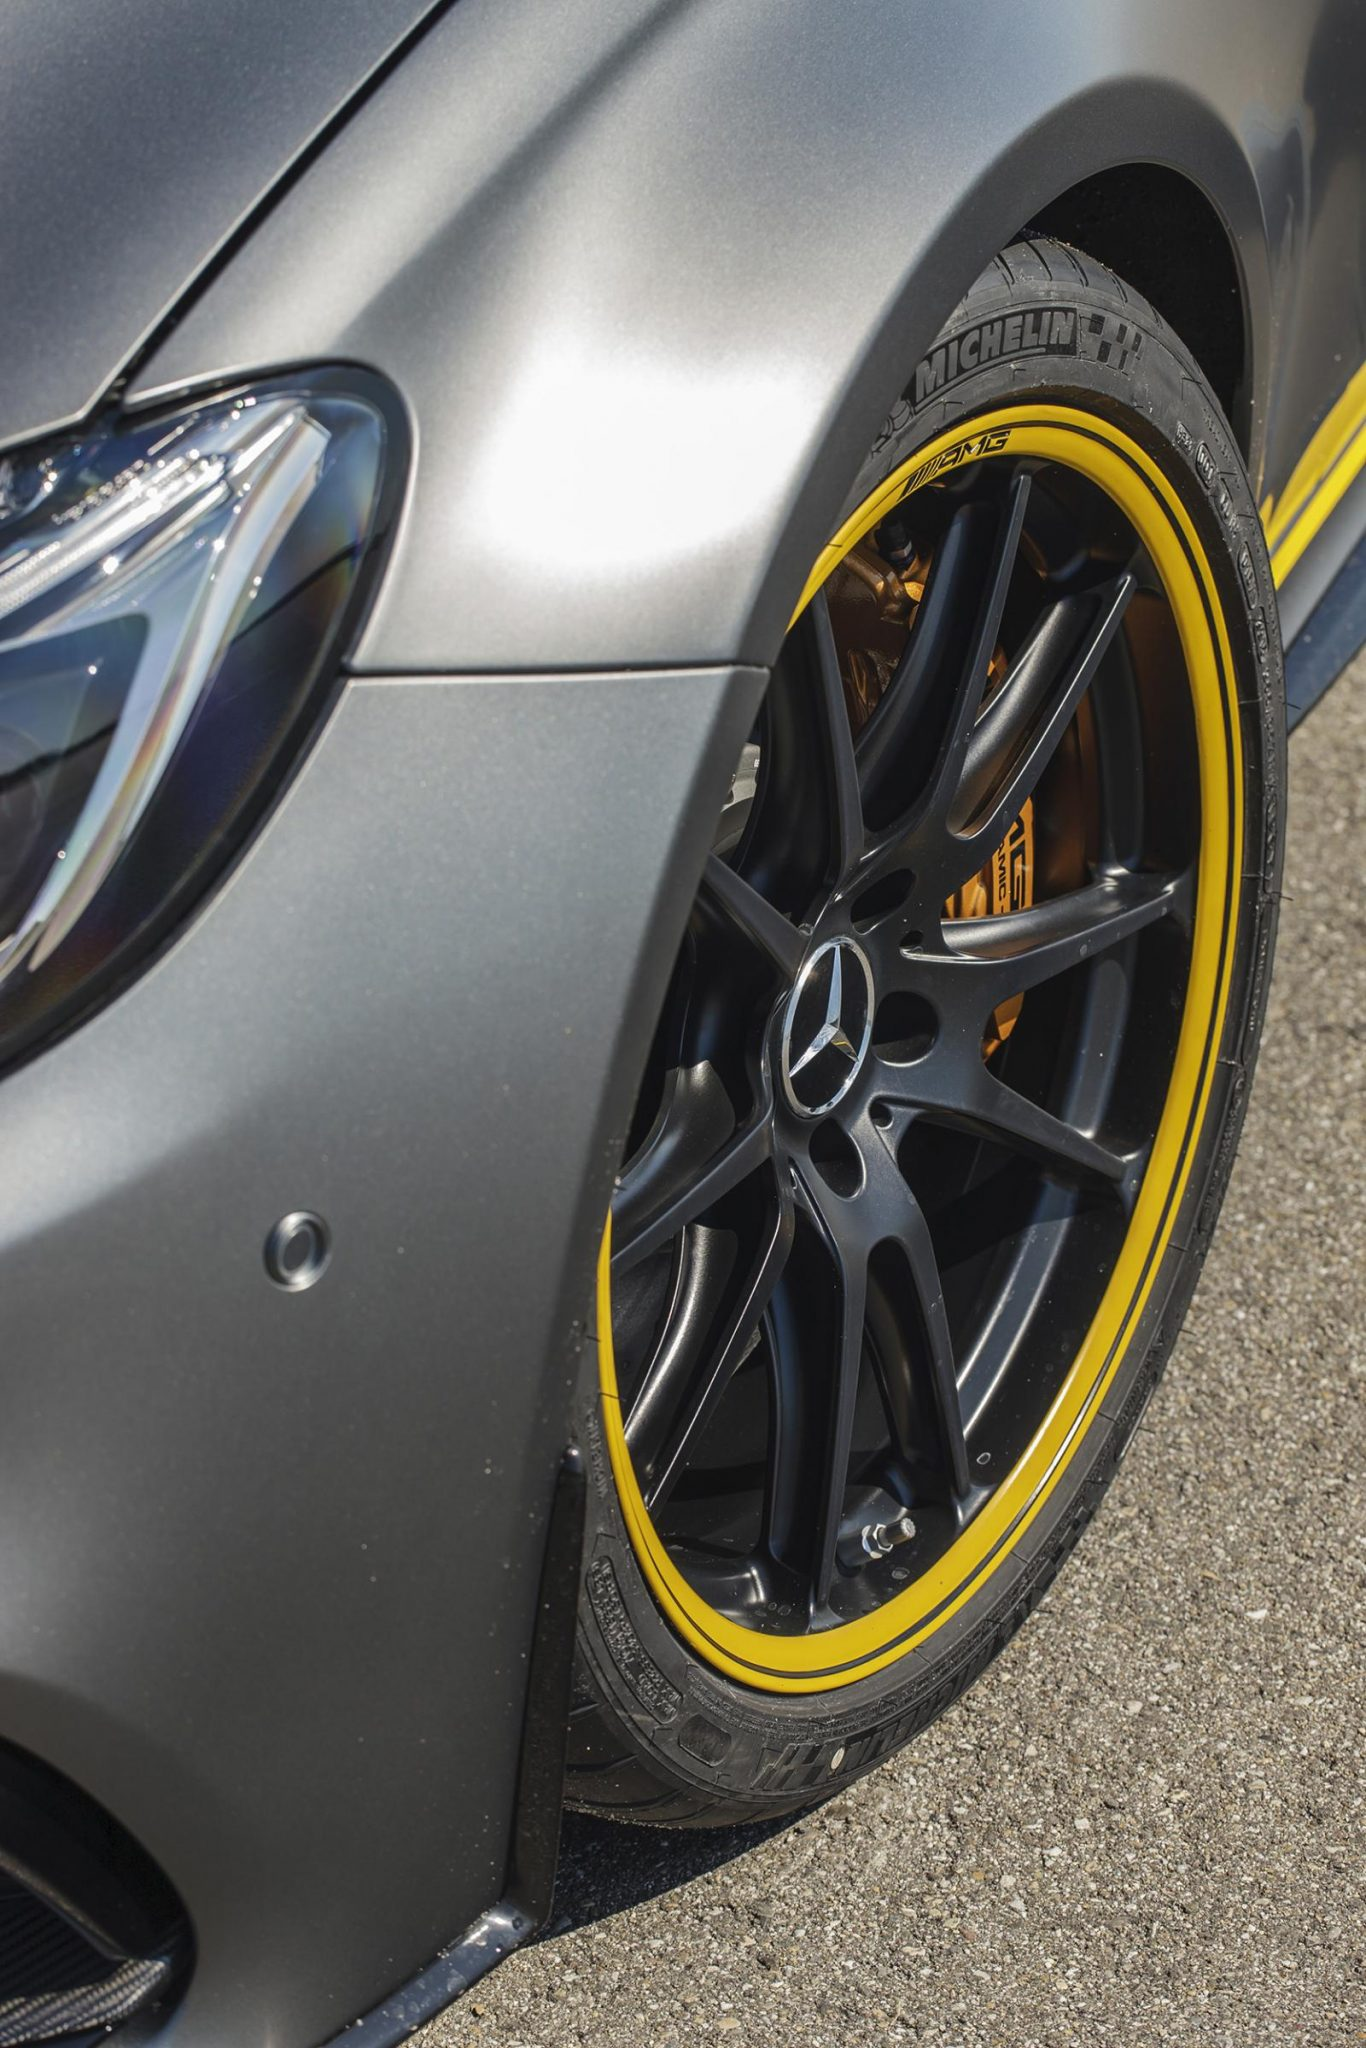 Mercedes-AMG C63 S Coupe Edition 1 wheel - ForceGT.com